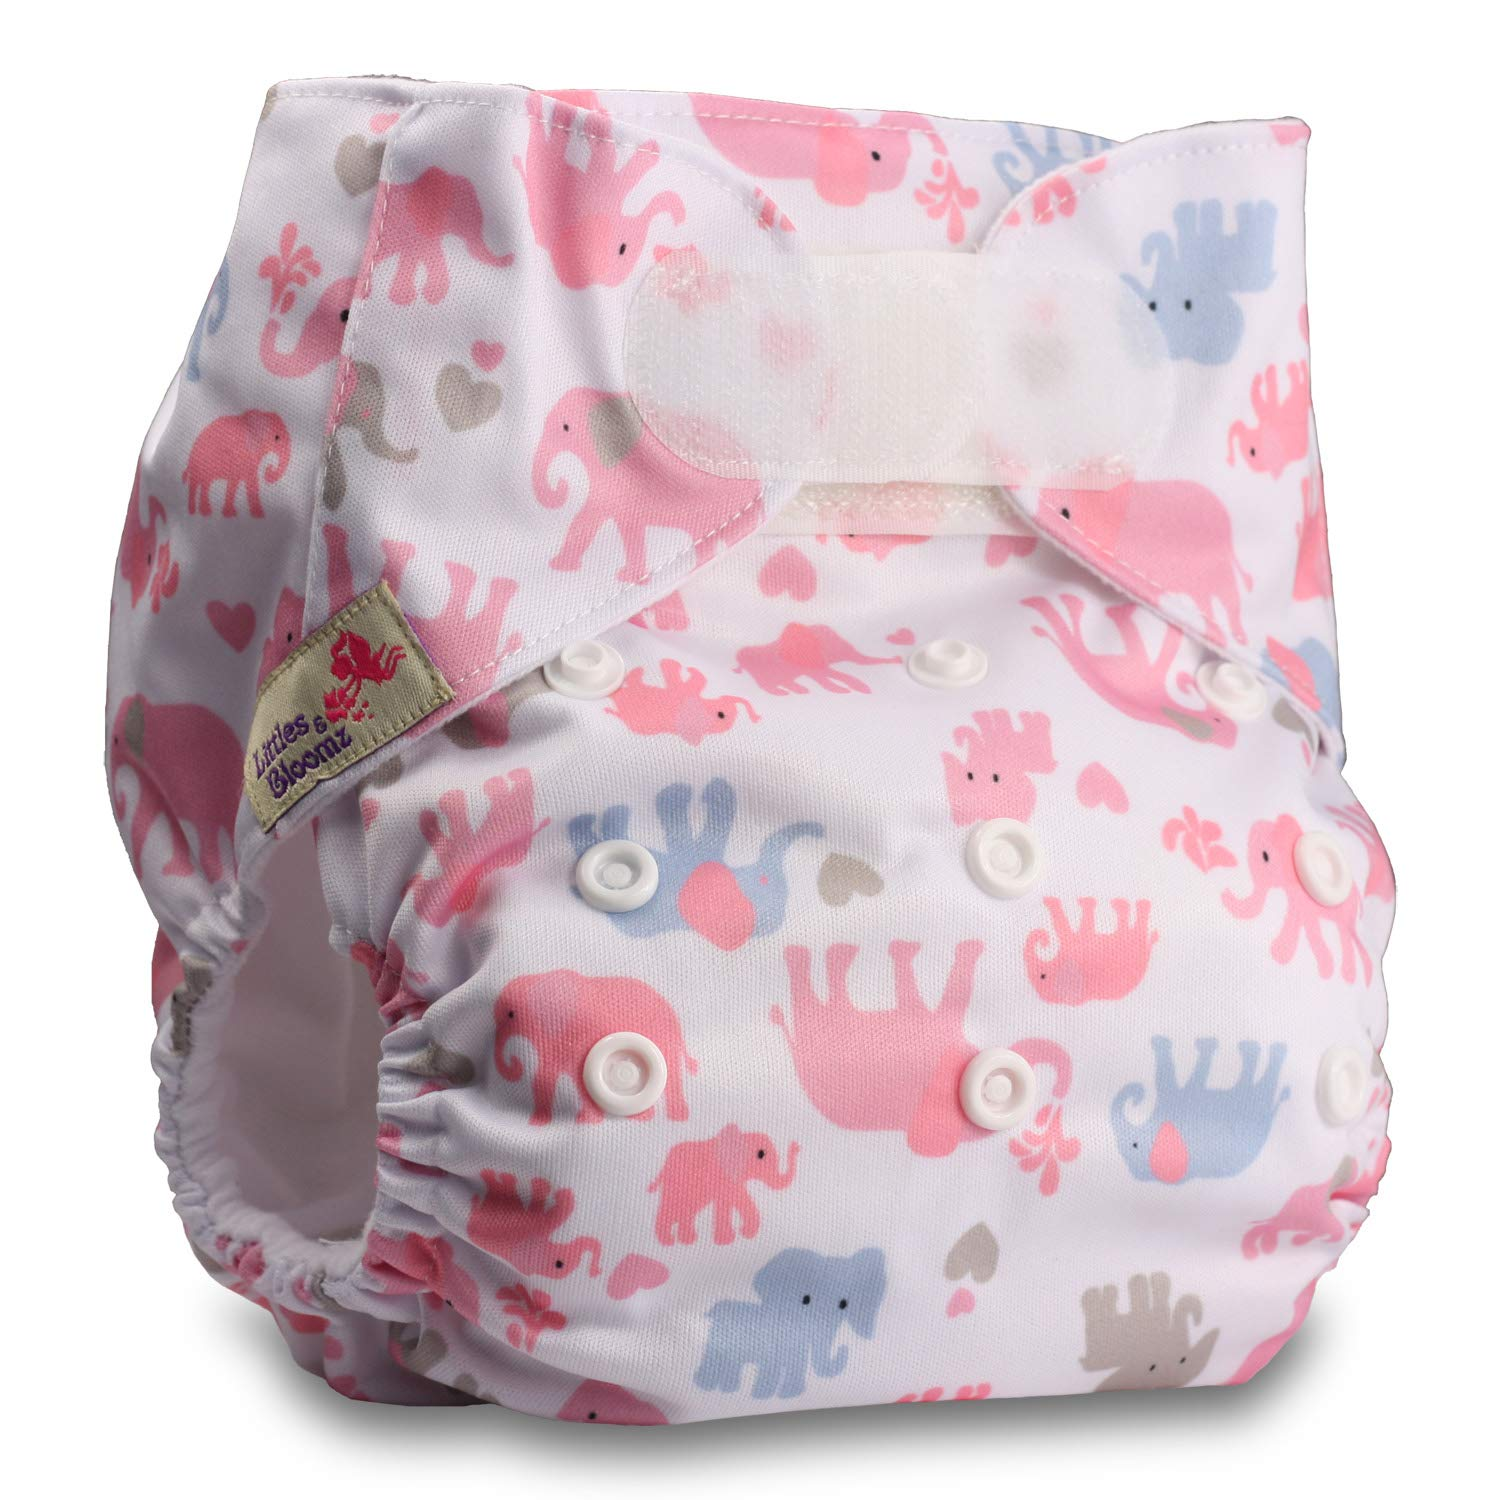 Littles /& Bloomz Set of 1 Pattern 66 Fastener: Hook-Loop with 1 Bamboo Insert Reusable Pocket Cloth Nappy